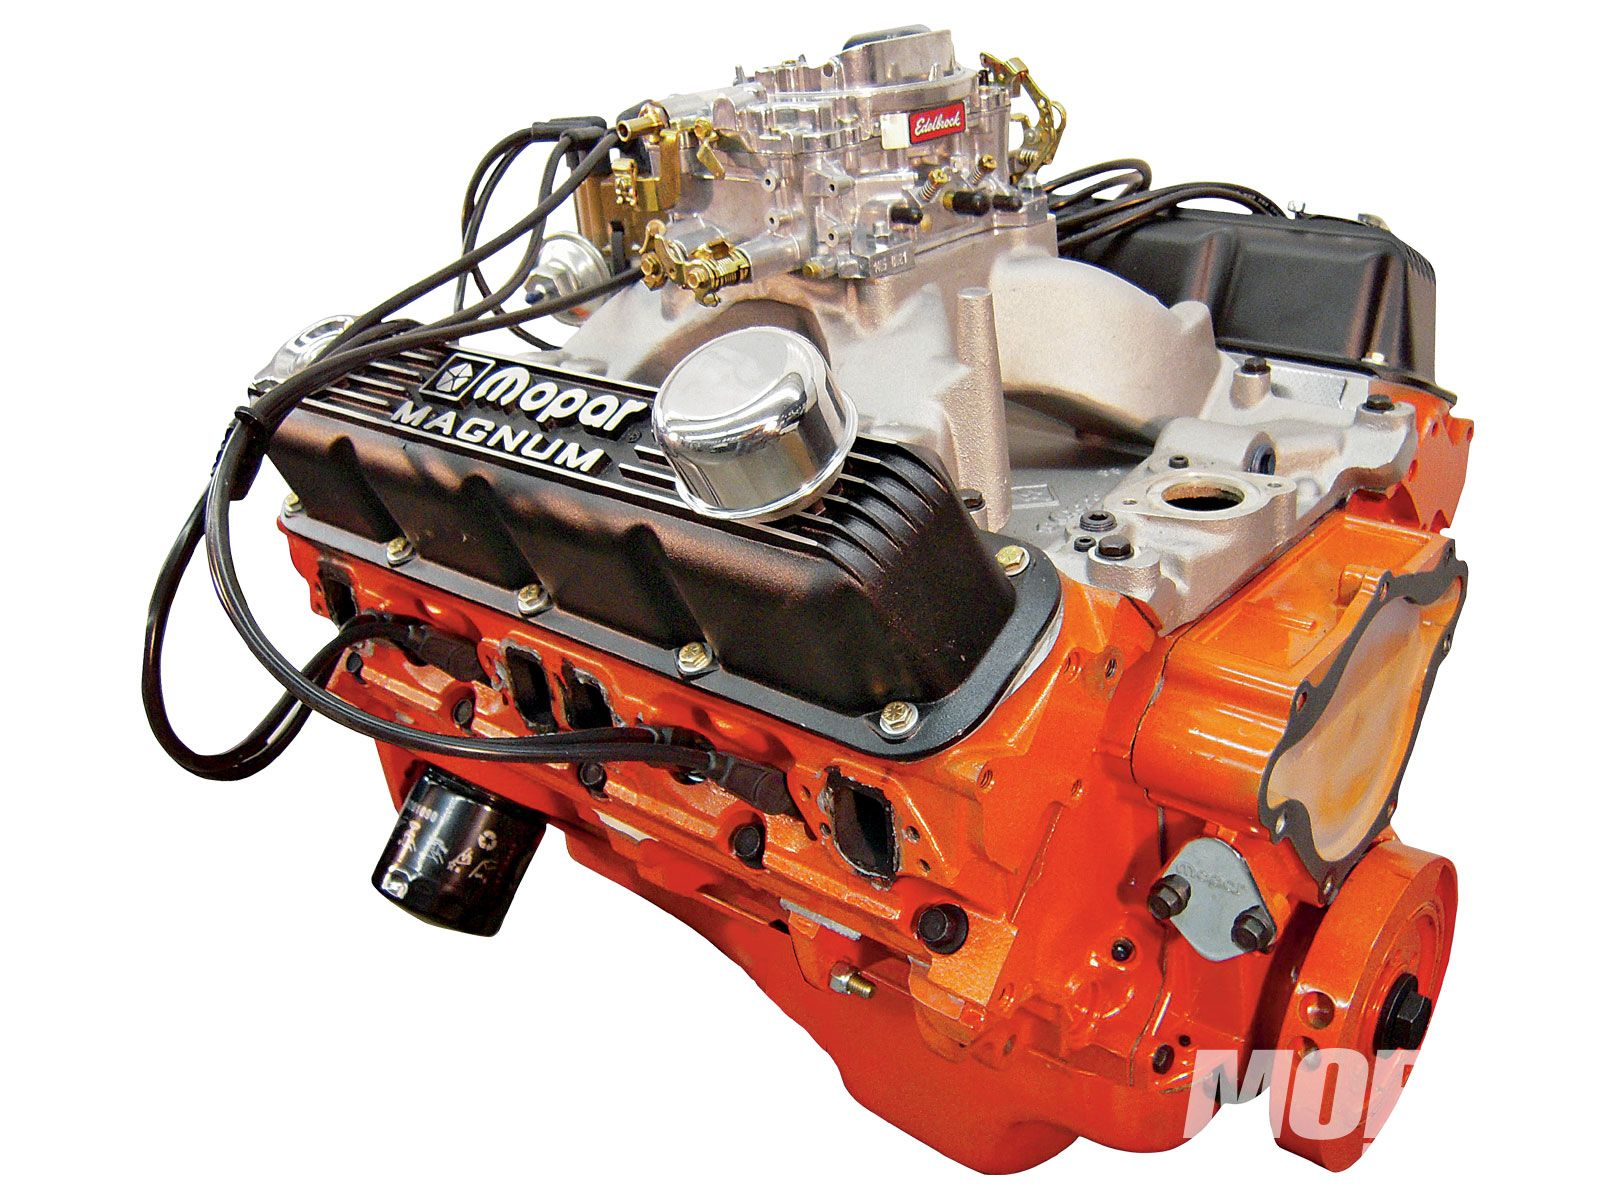 MOPAR 360cid Complete crate engine | Horsepower | Crate